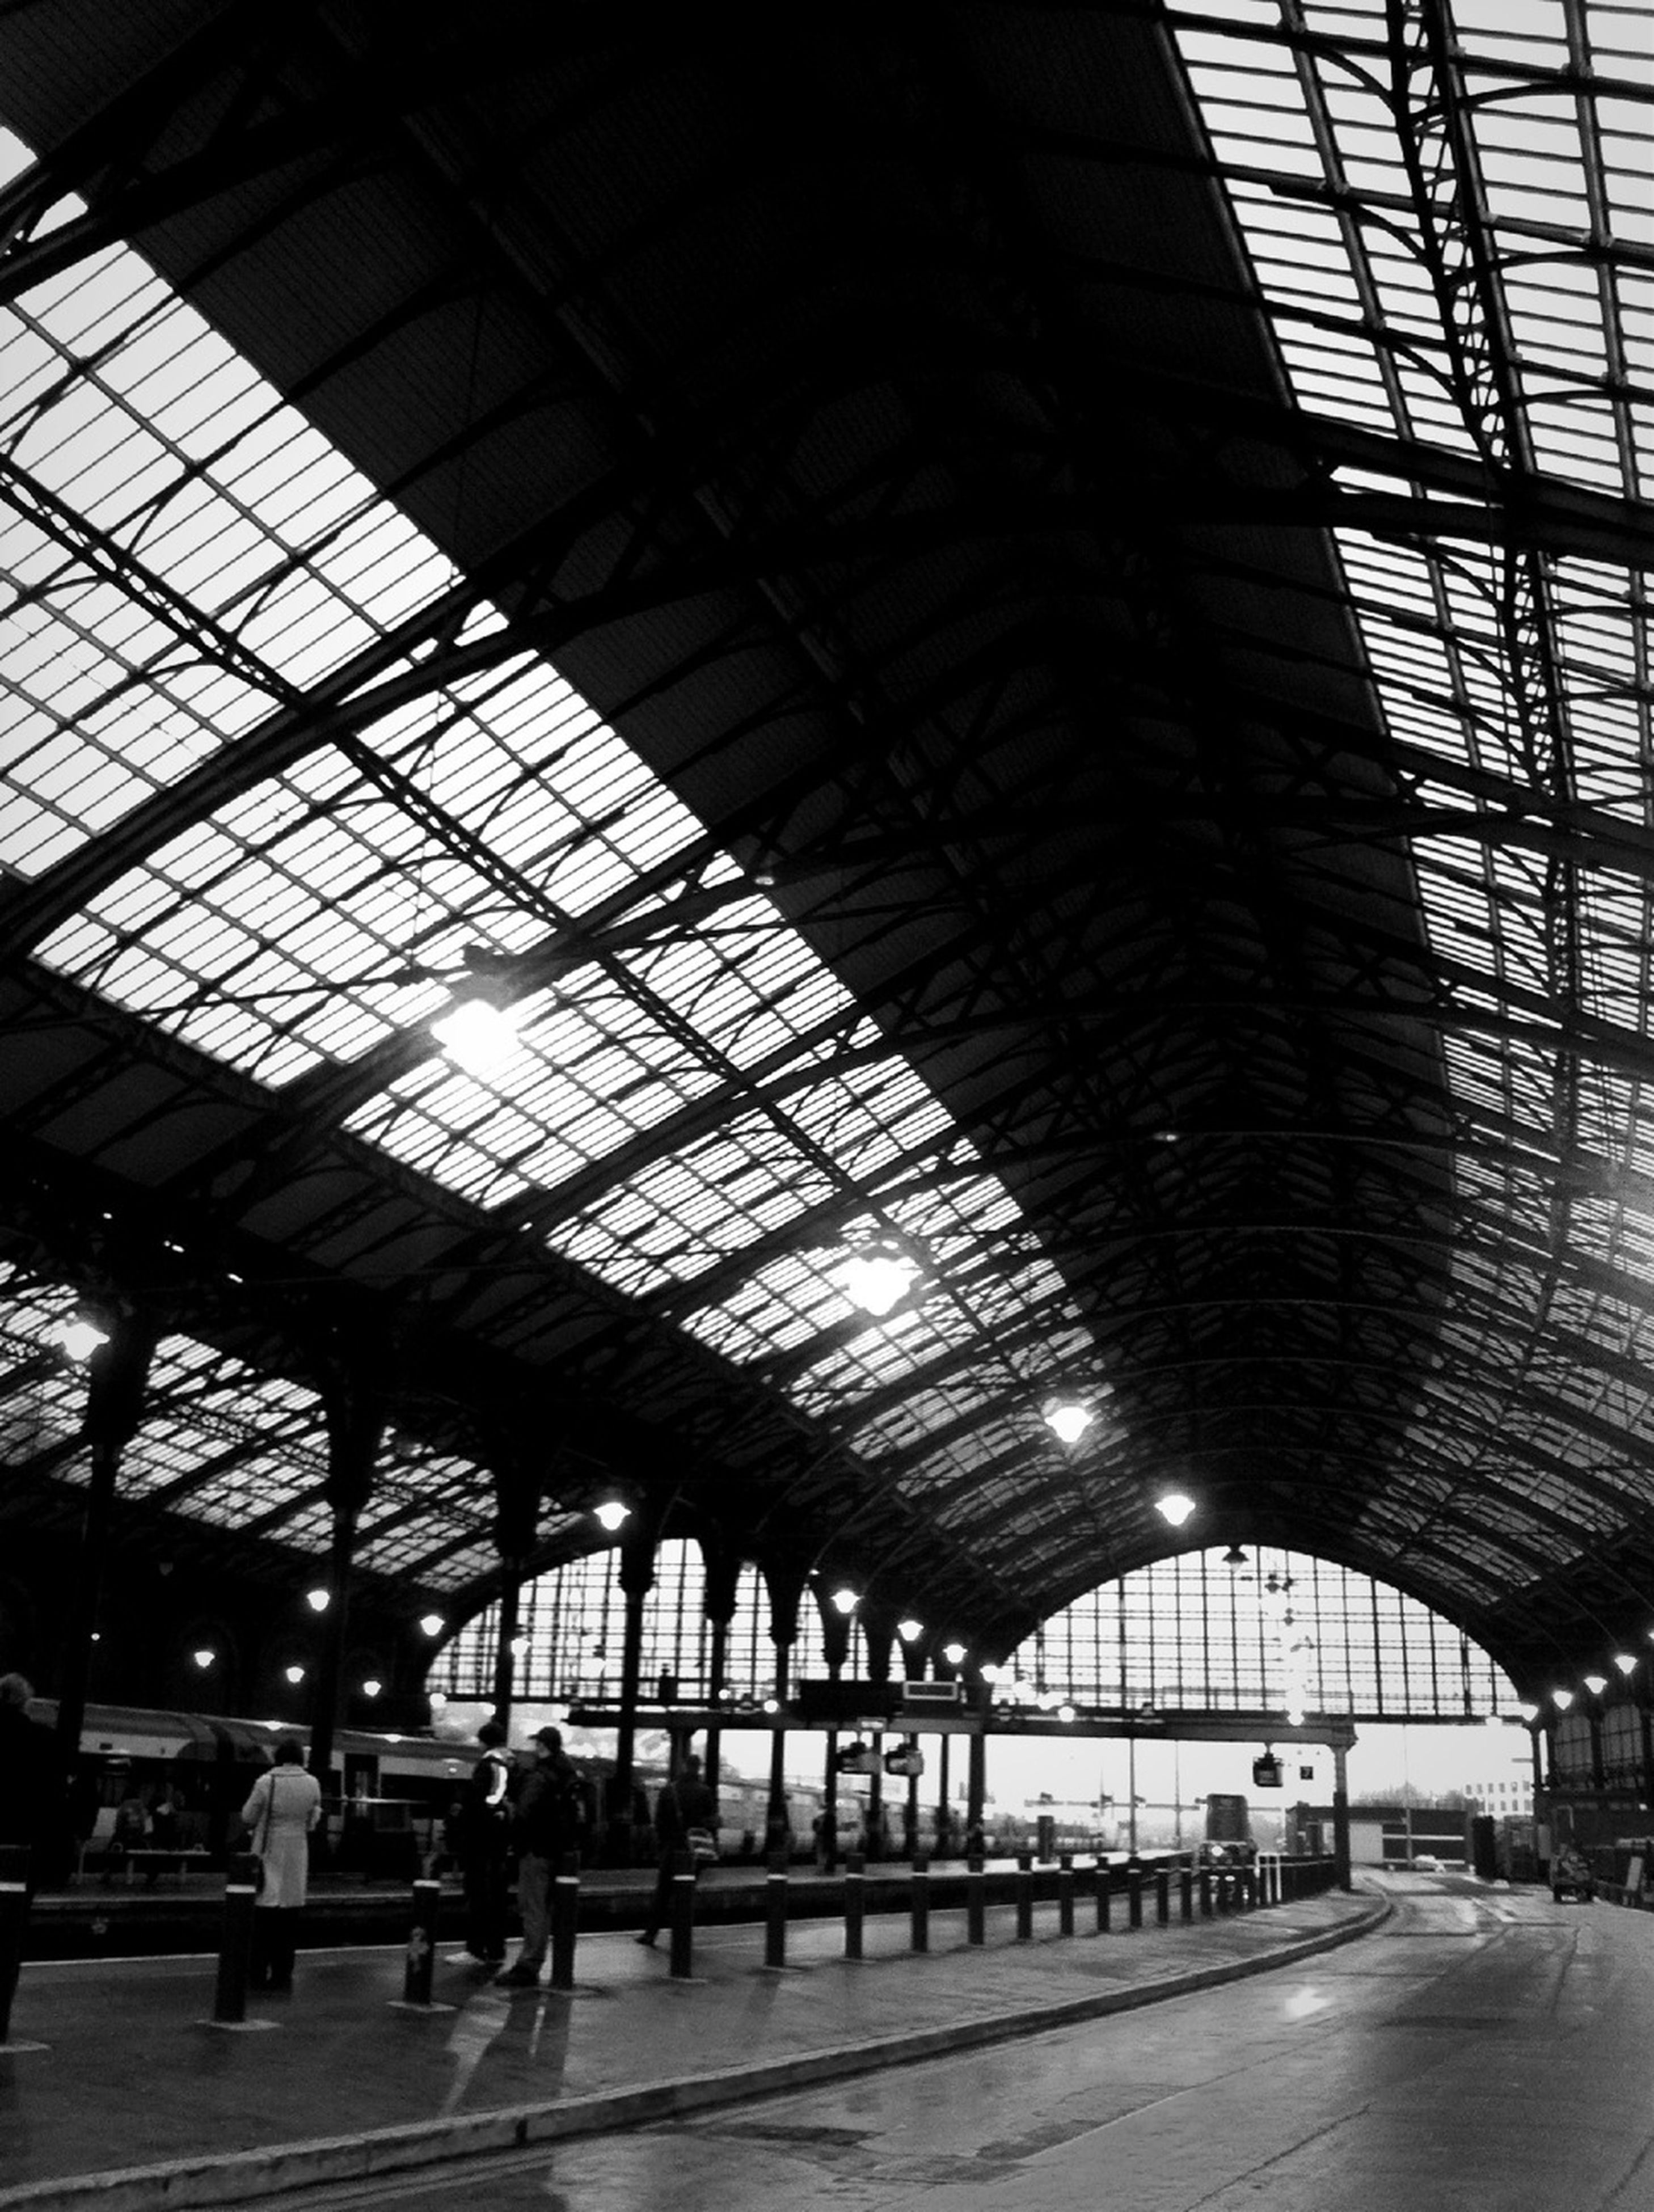 transportation, indoors, railroad station, railroad station platform, ceiling, public transportation, built structure, architecture, illuminated, rail transportation, transportation building - type of building, incidental people, mode of transport, airport, travel, subway station, railroad track, city life, train - vehicle